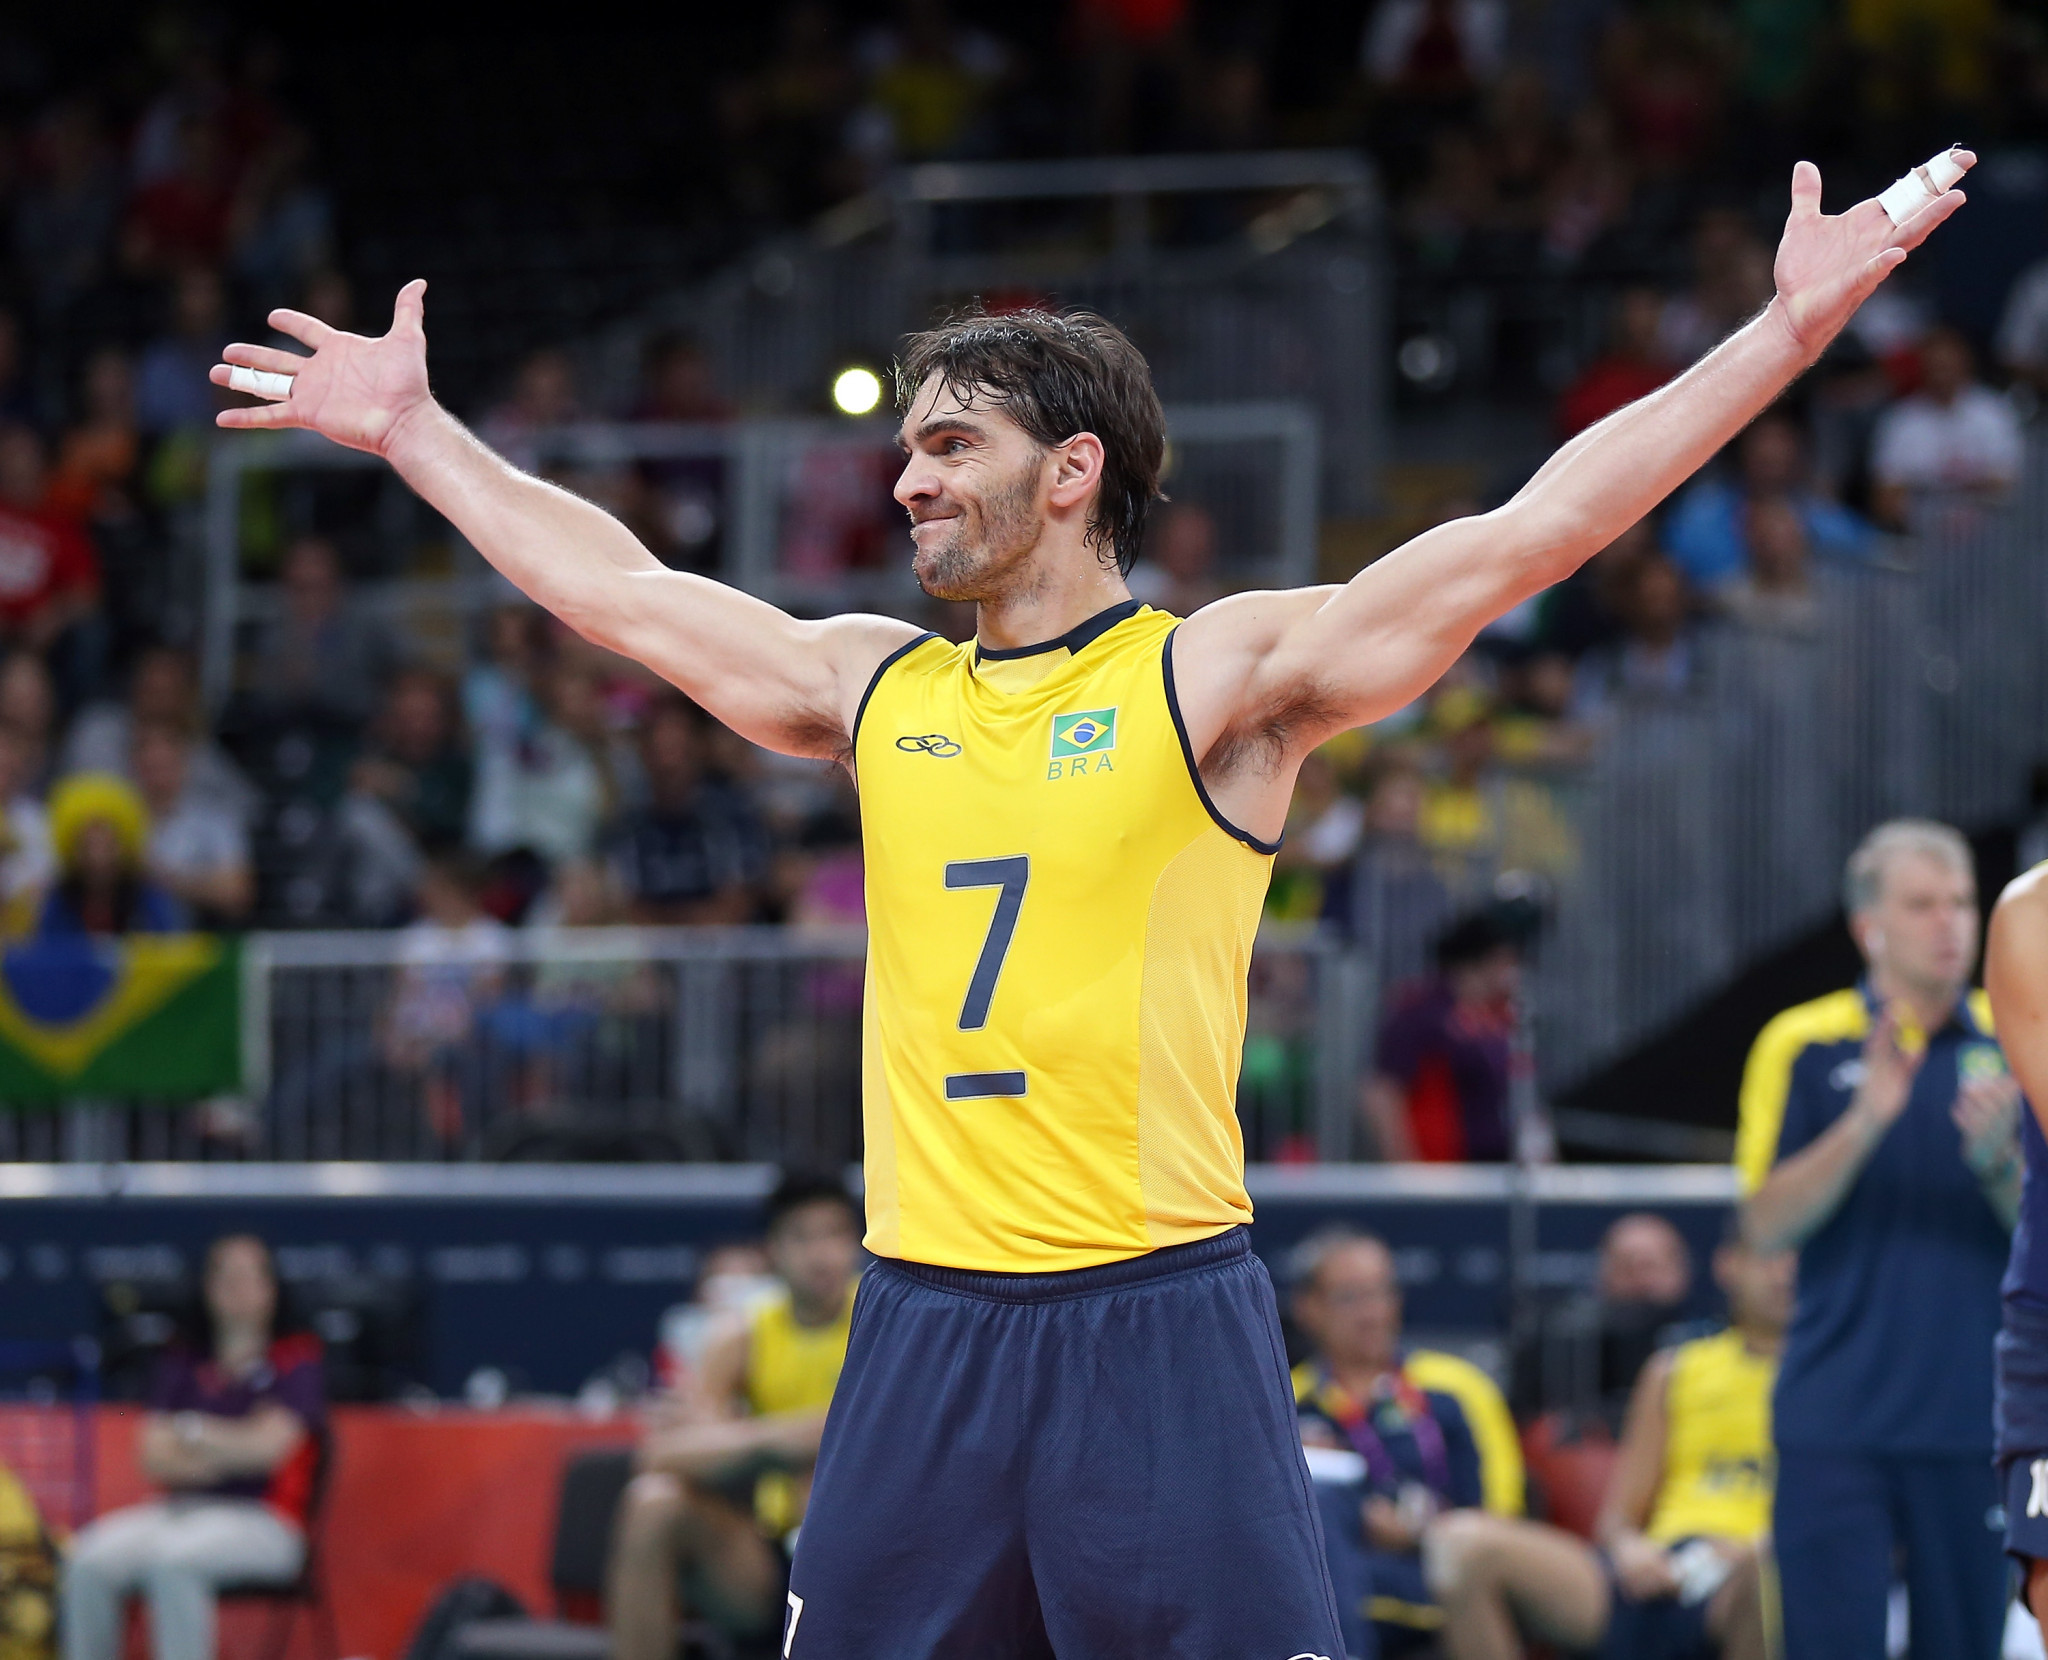 Brazilian legend Giba will be one of the names on court when the inaugural Snow Volleyball World Tour begins tomorrow in Austria ©Getty Images